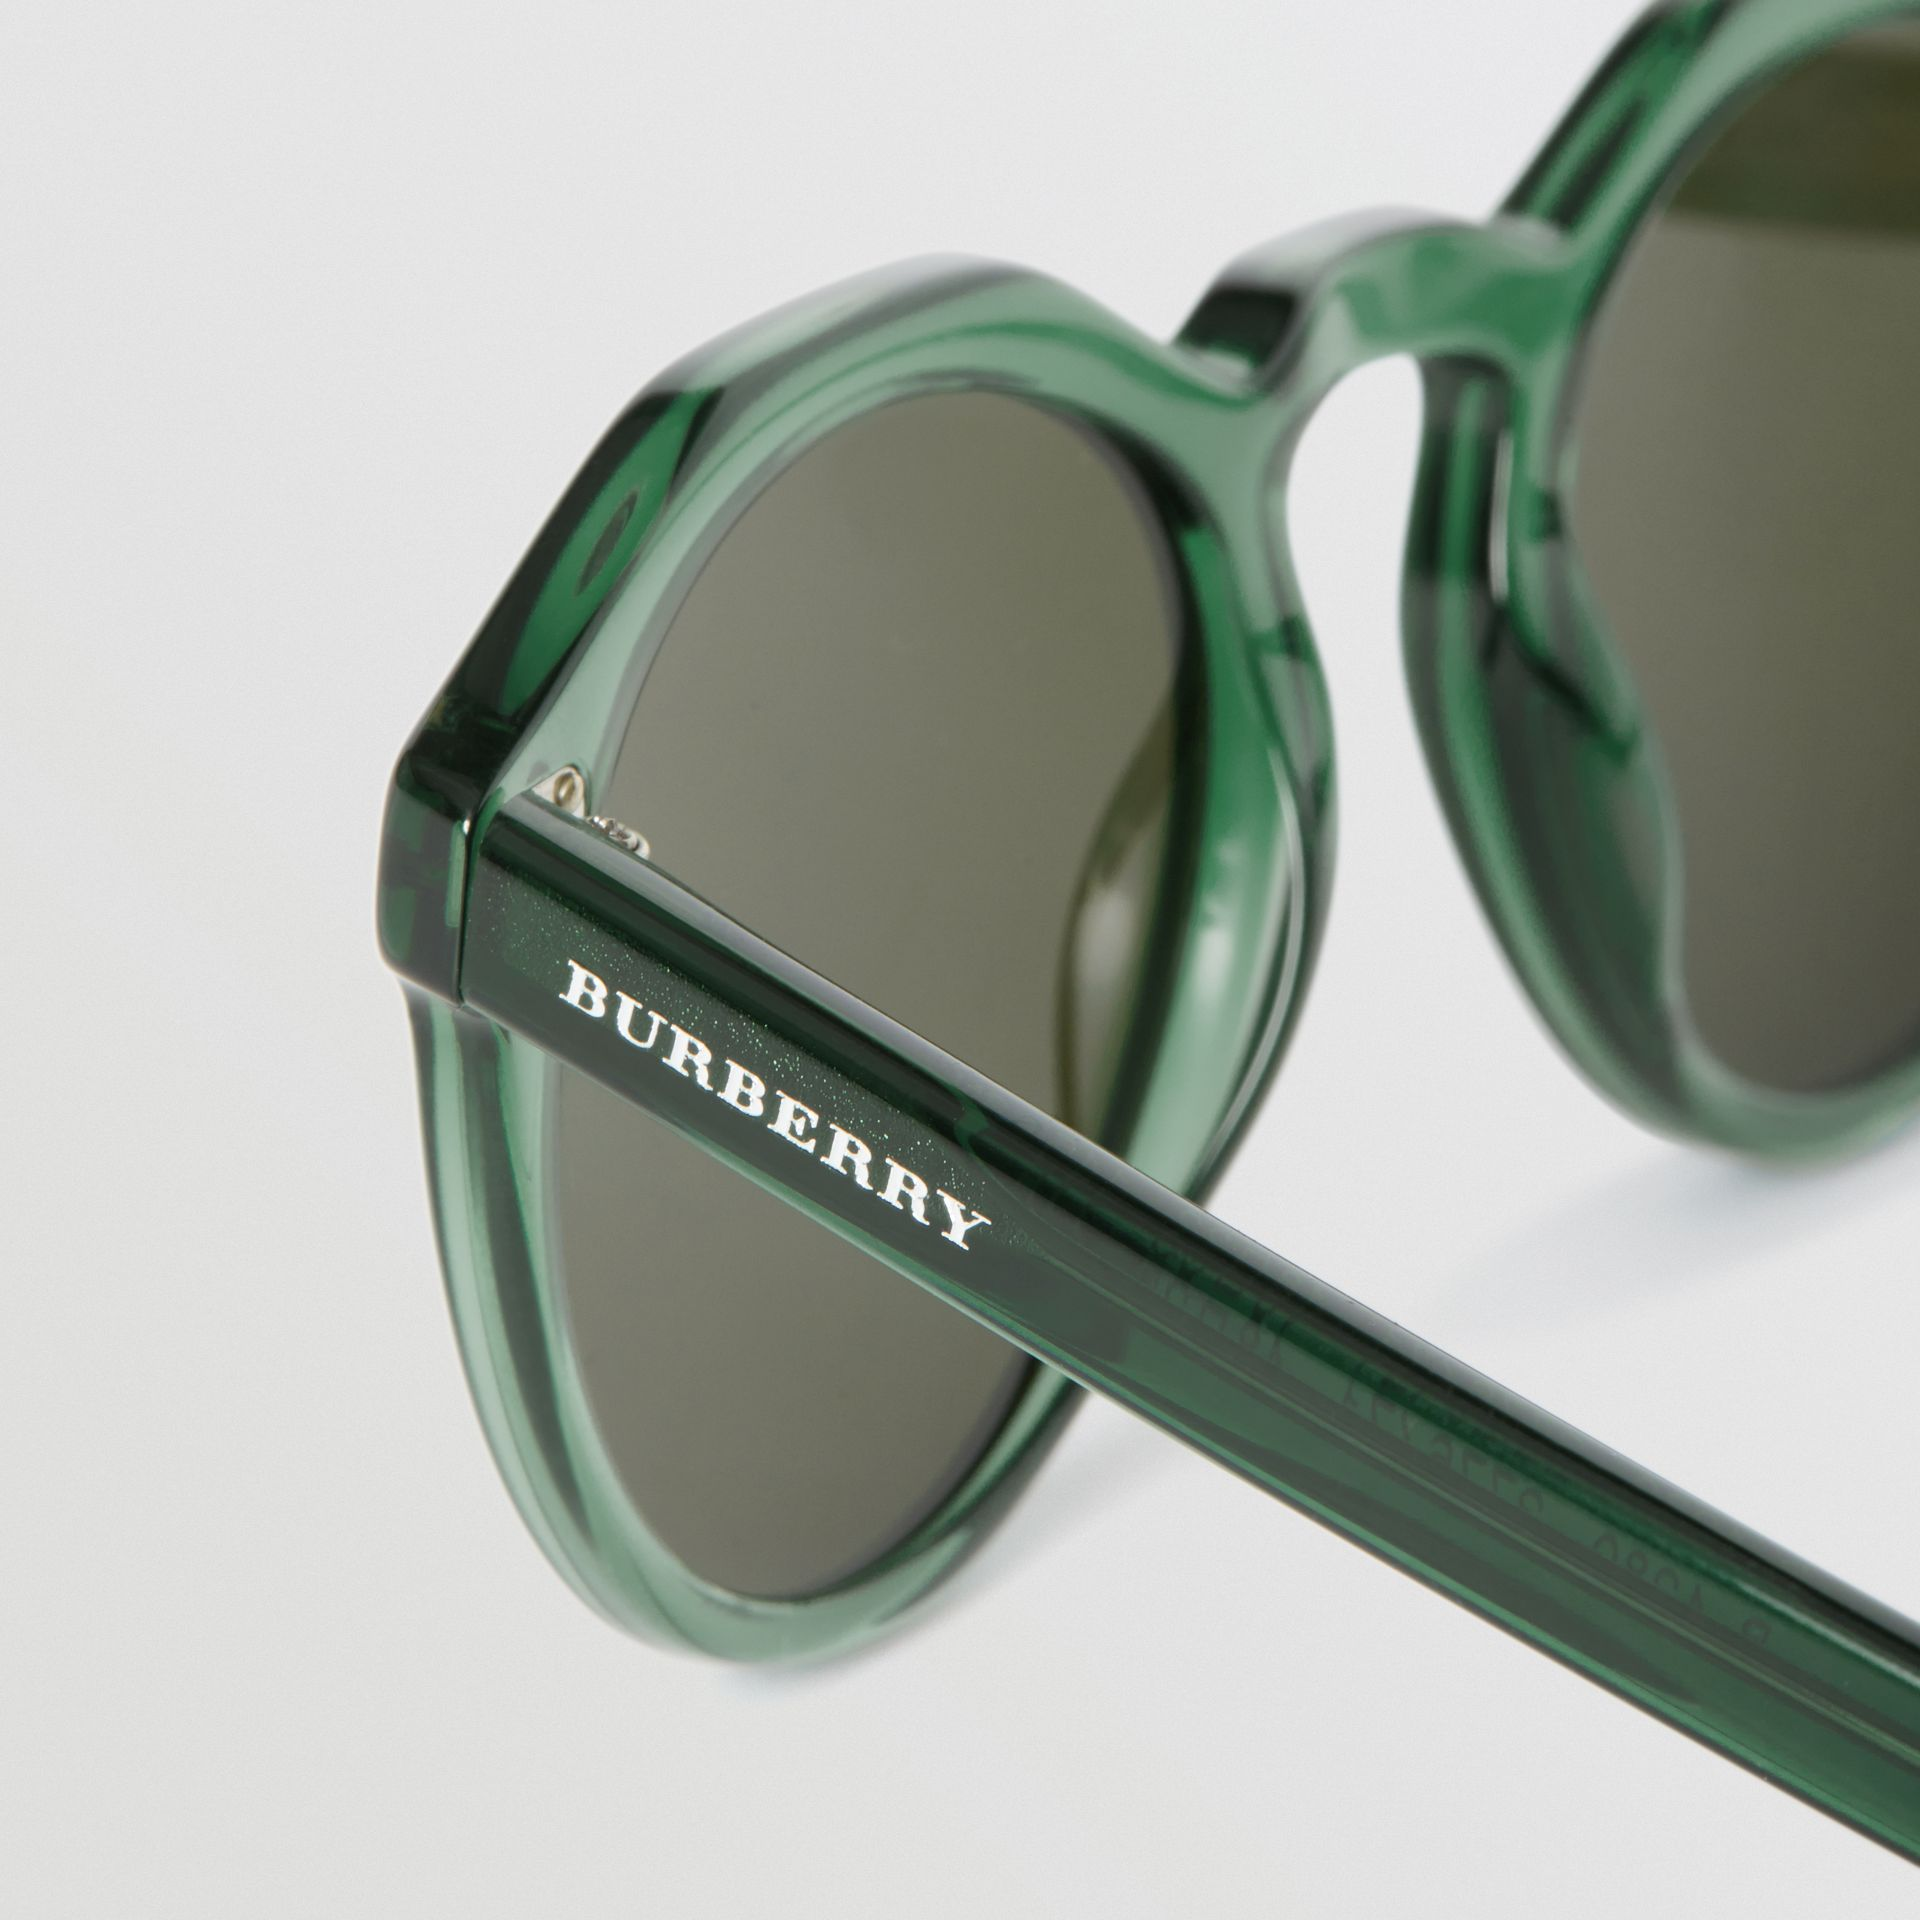 Keyhole Round Frame Sunglasses in Green - Men | Burberry United Kingdom - gallery image 1